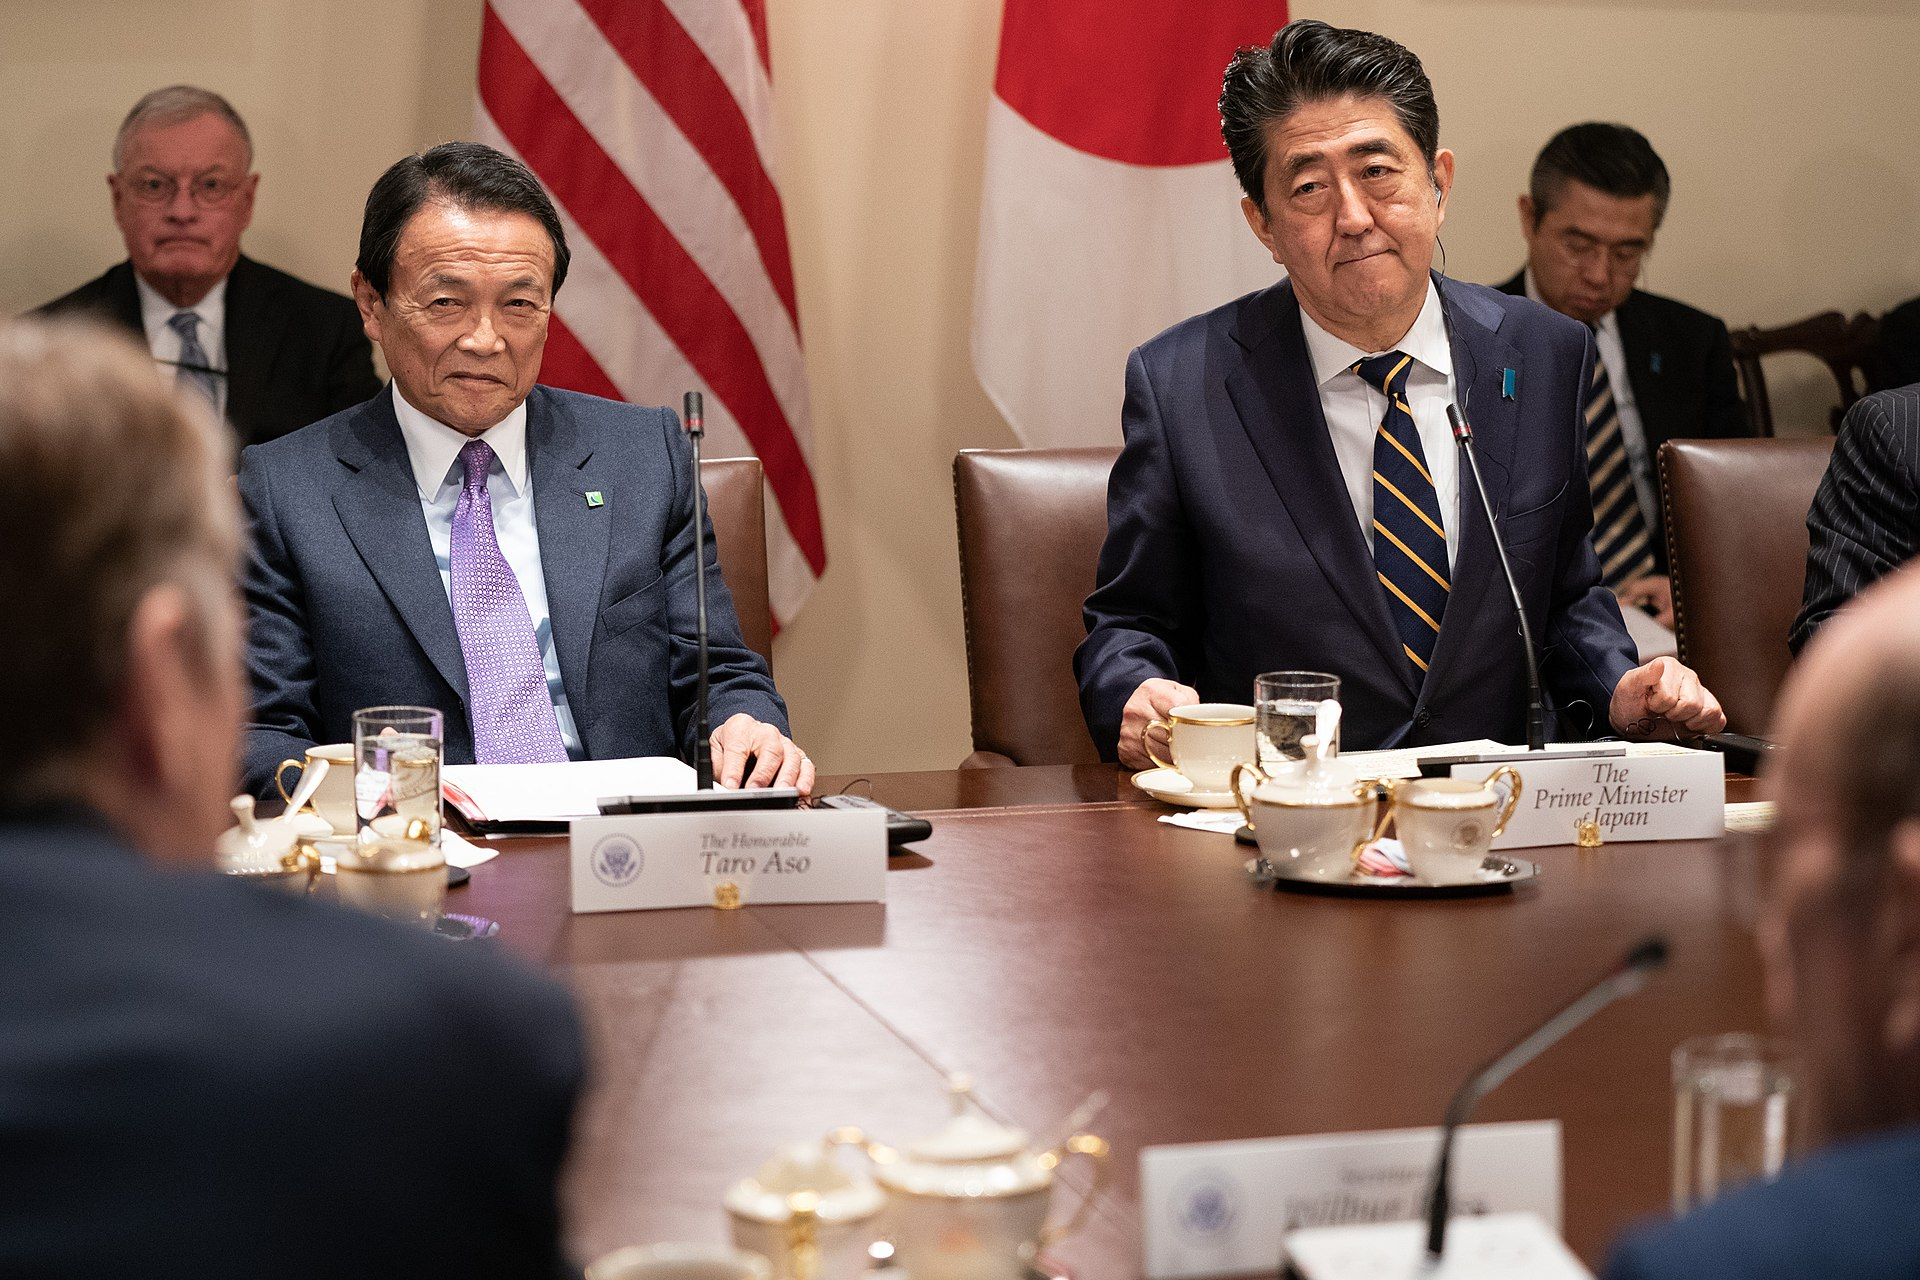 Japan sends mixed signals as they push for 'World Free of Nuclear Weapons'